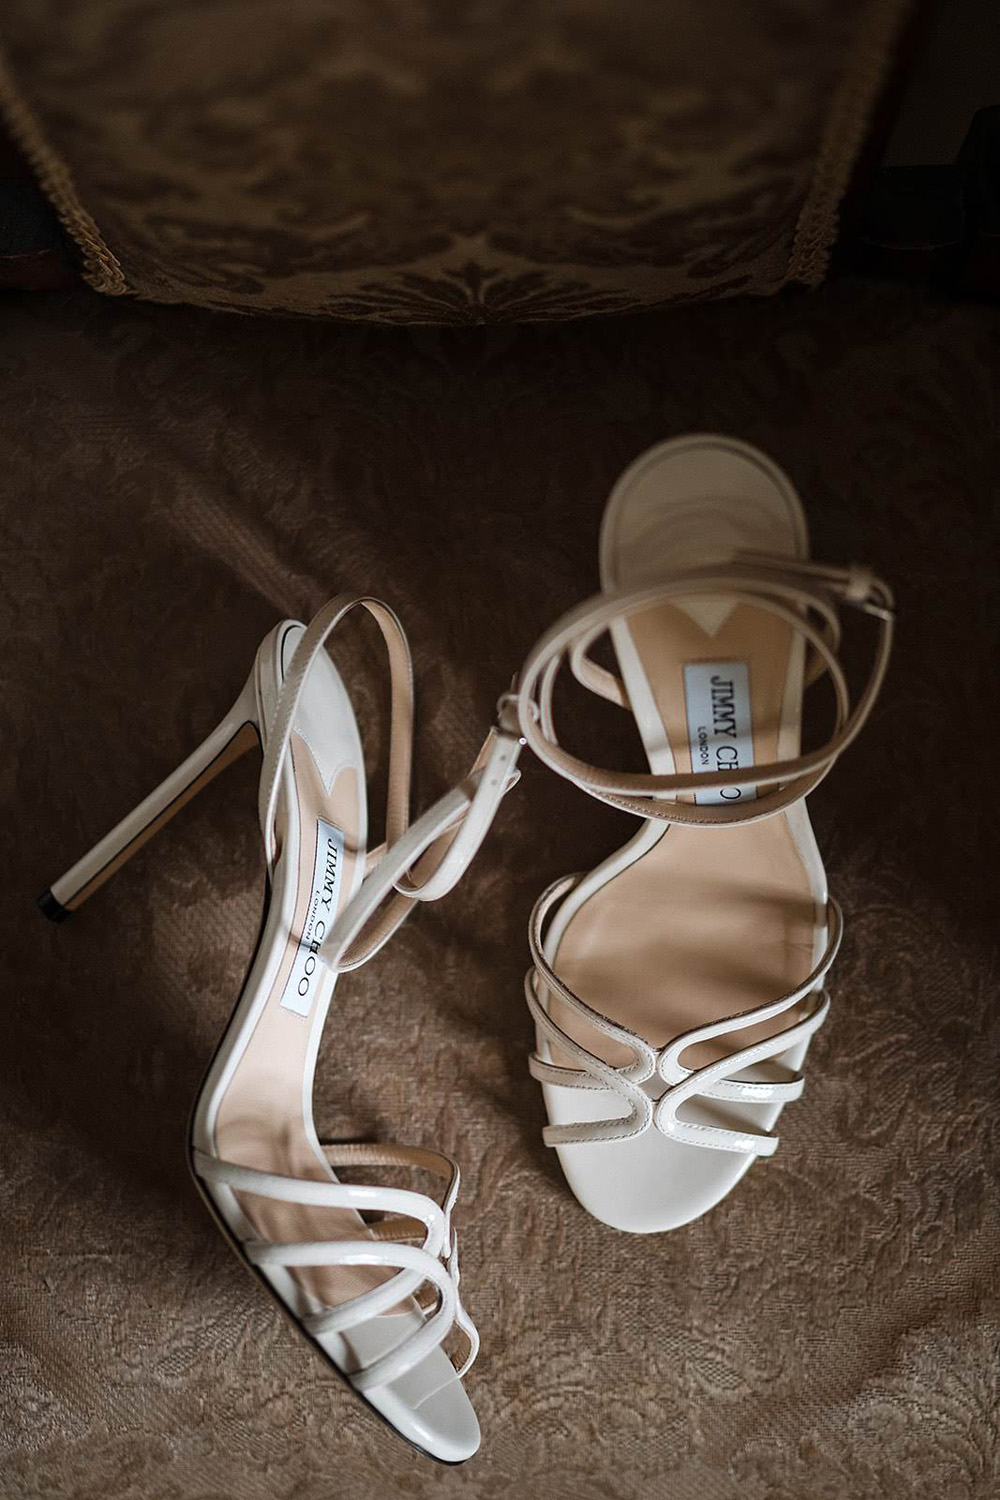 Castle elopement wedding shoes